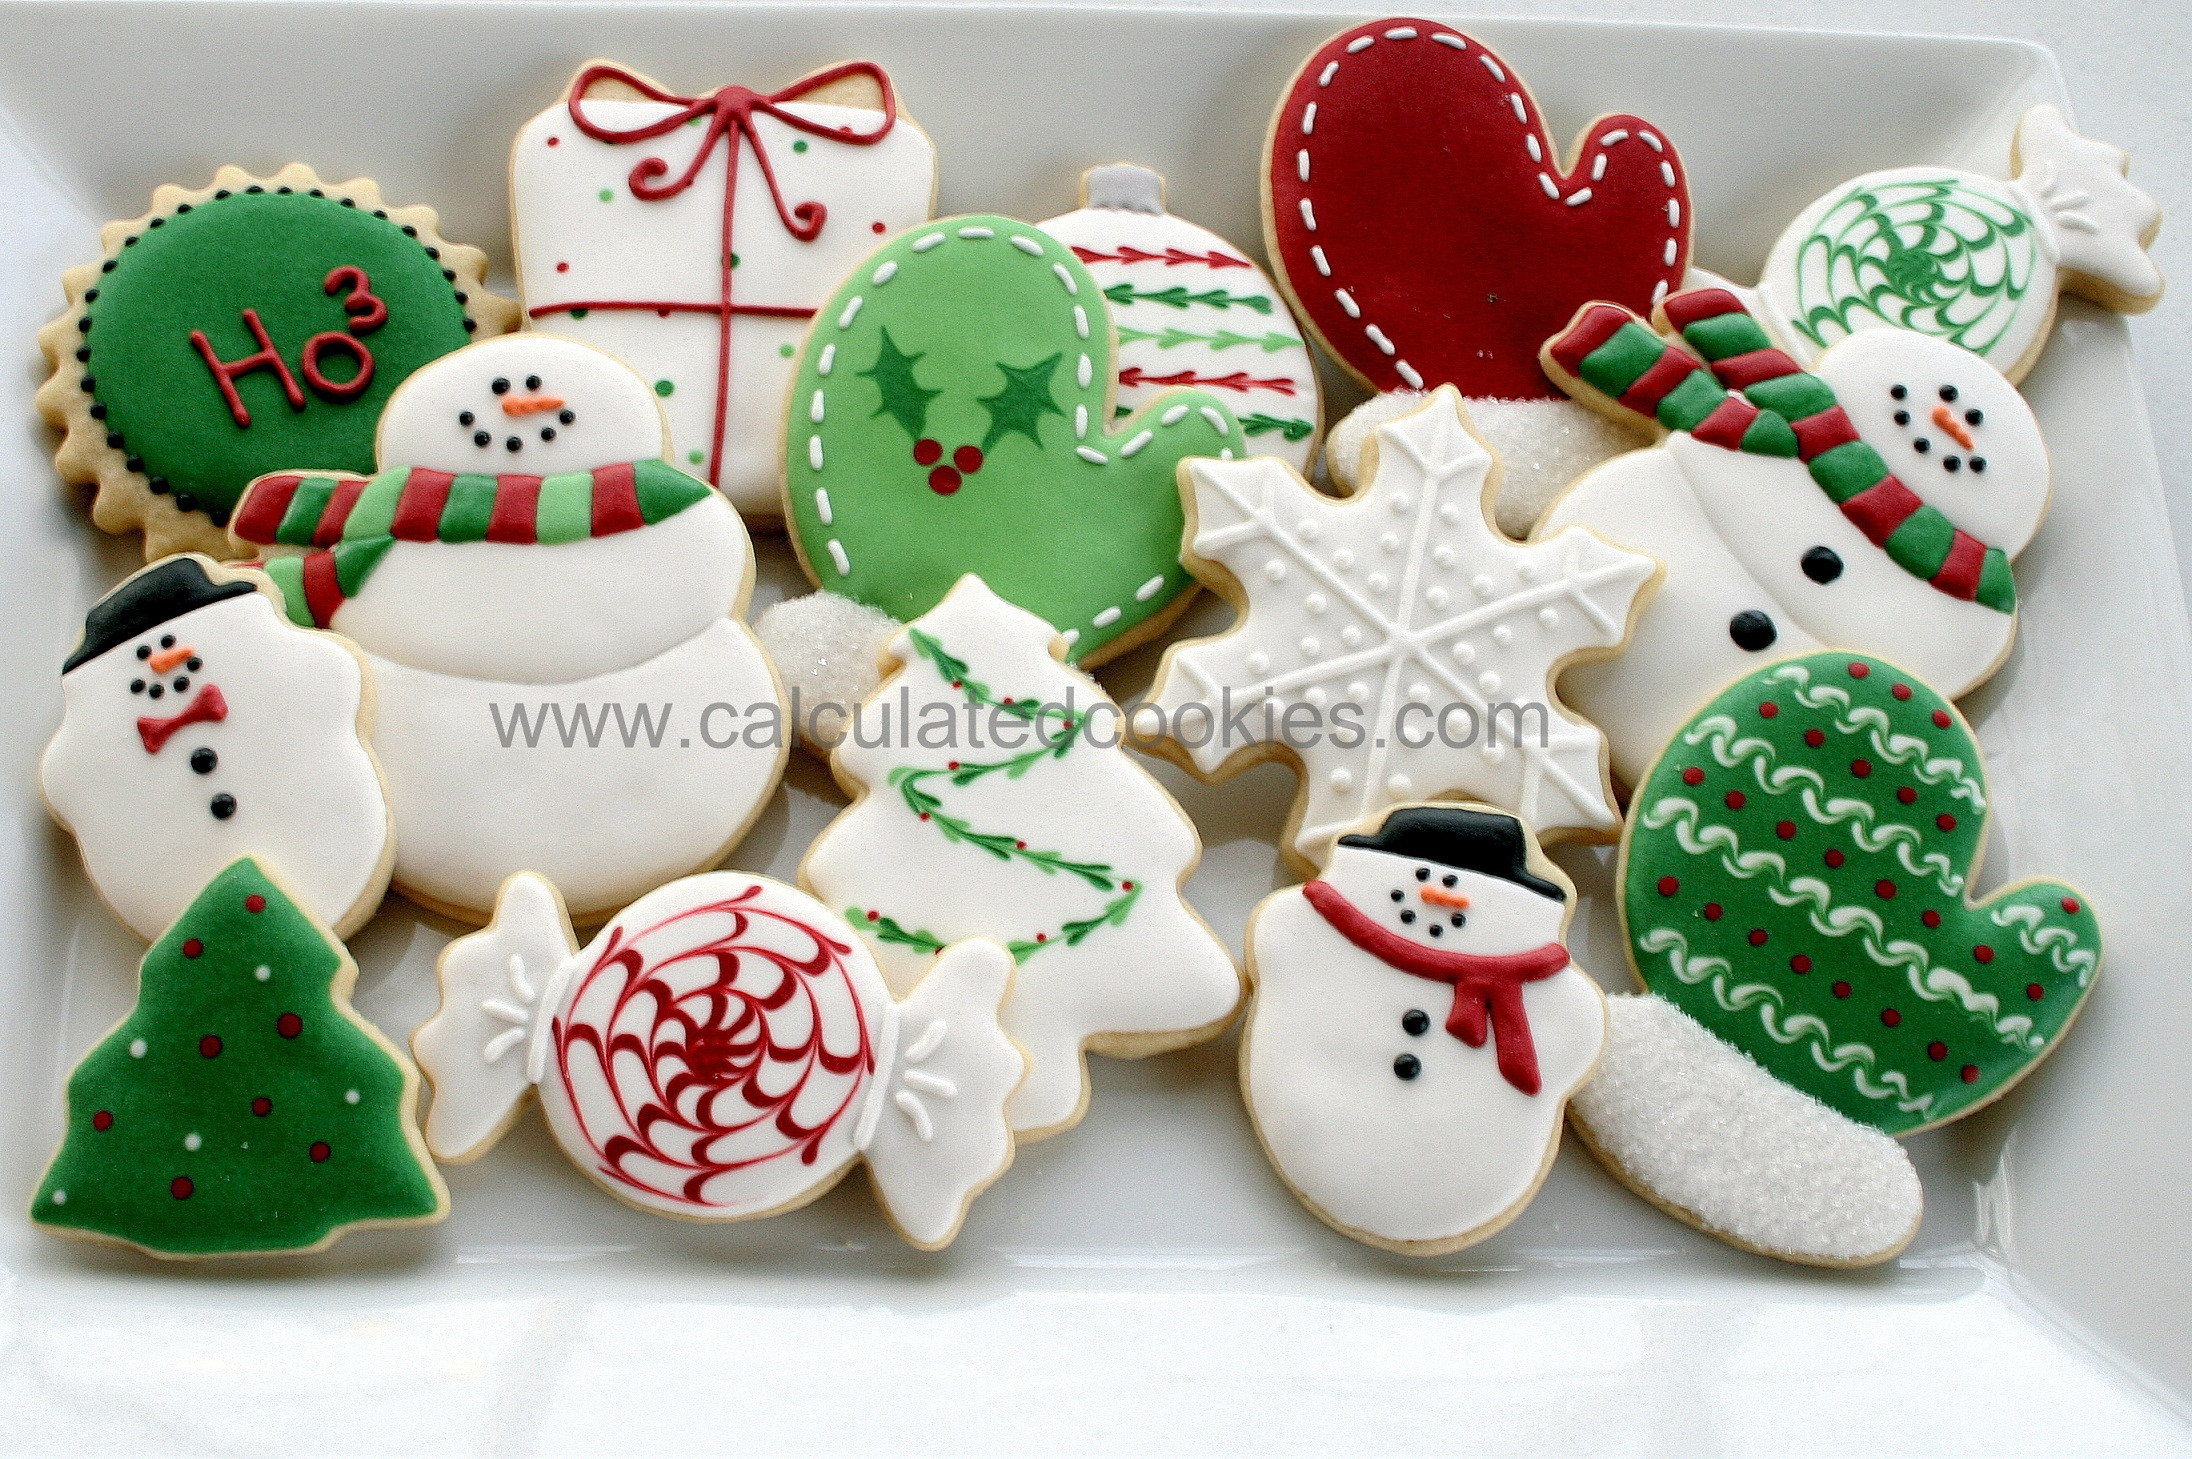 Decorated Christmas Sugar Cookies  2012 Archives Calculated CookiesCalculated Cookies